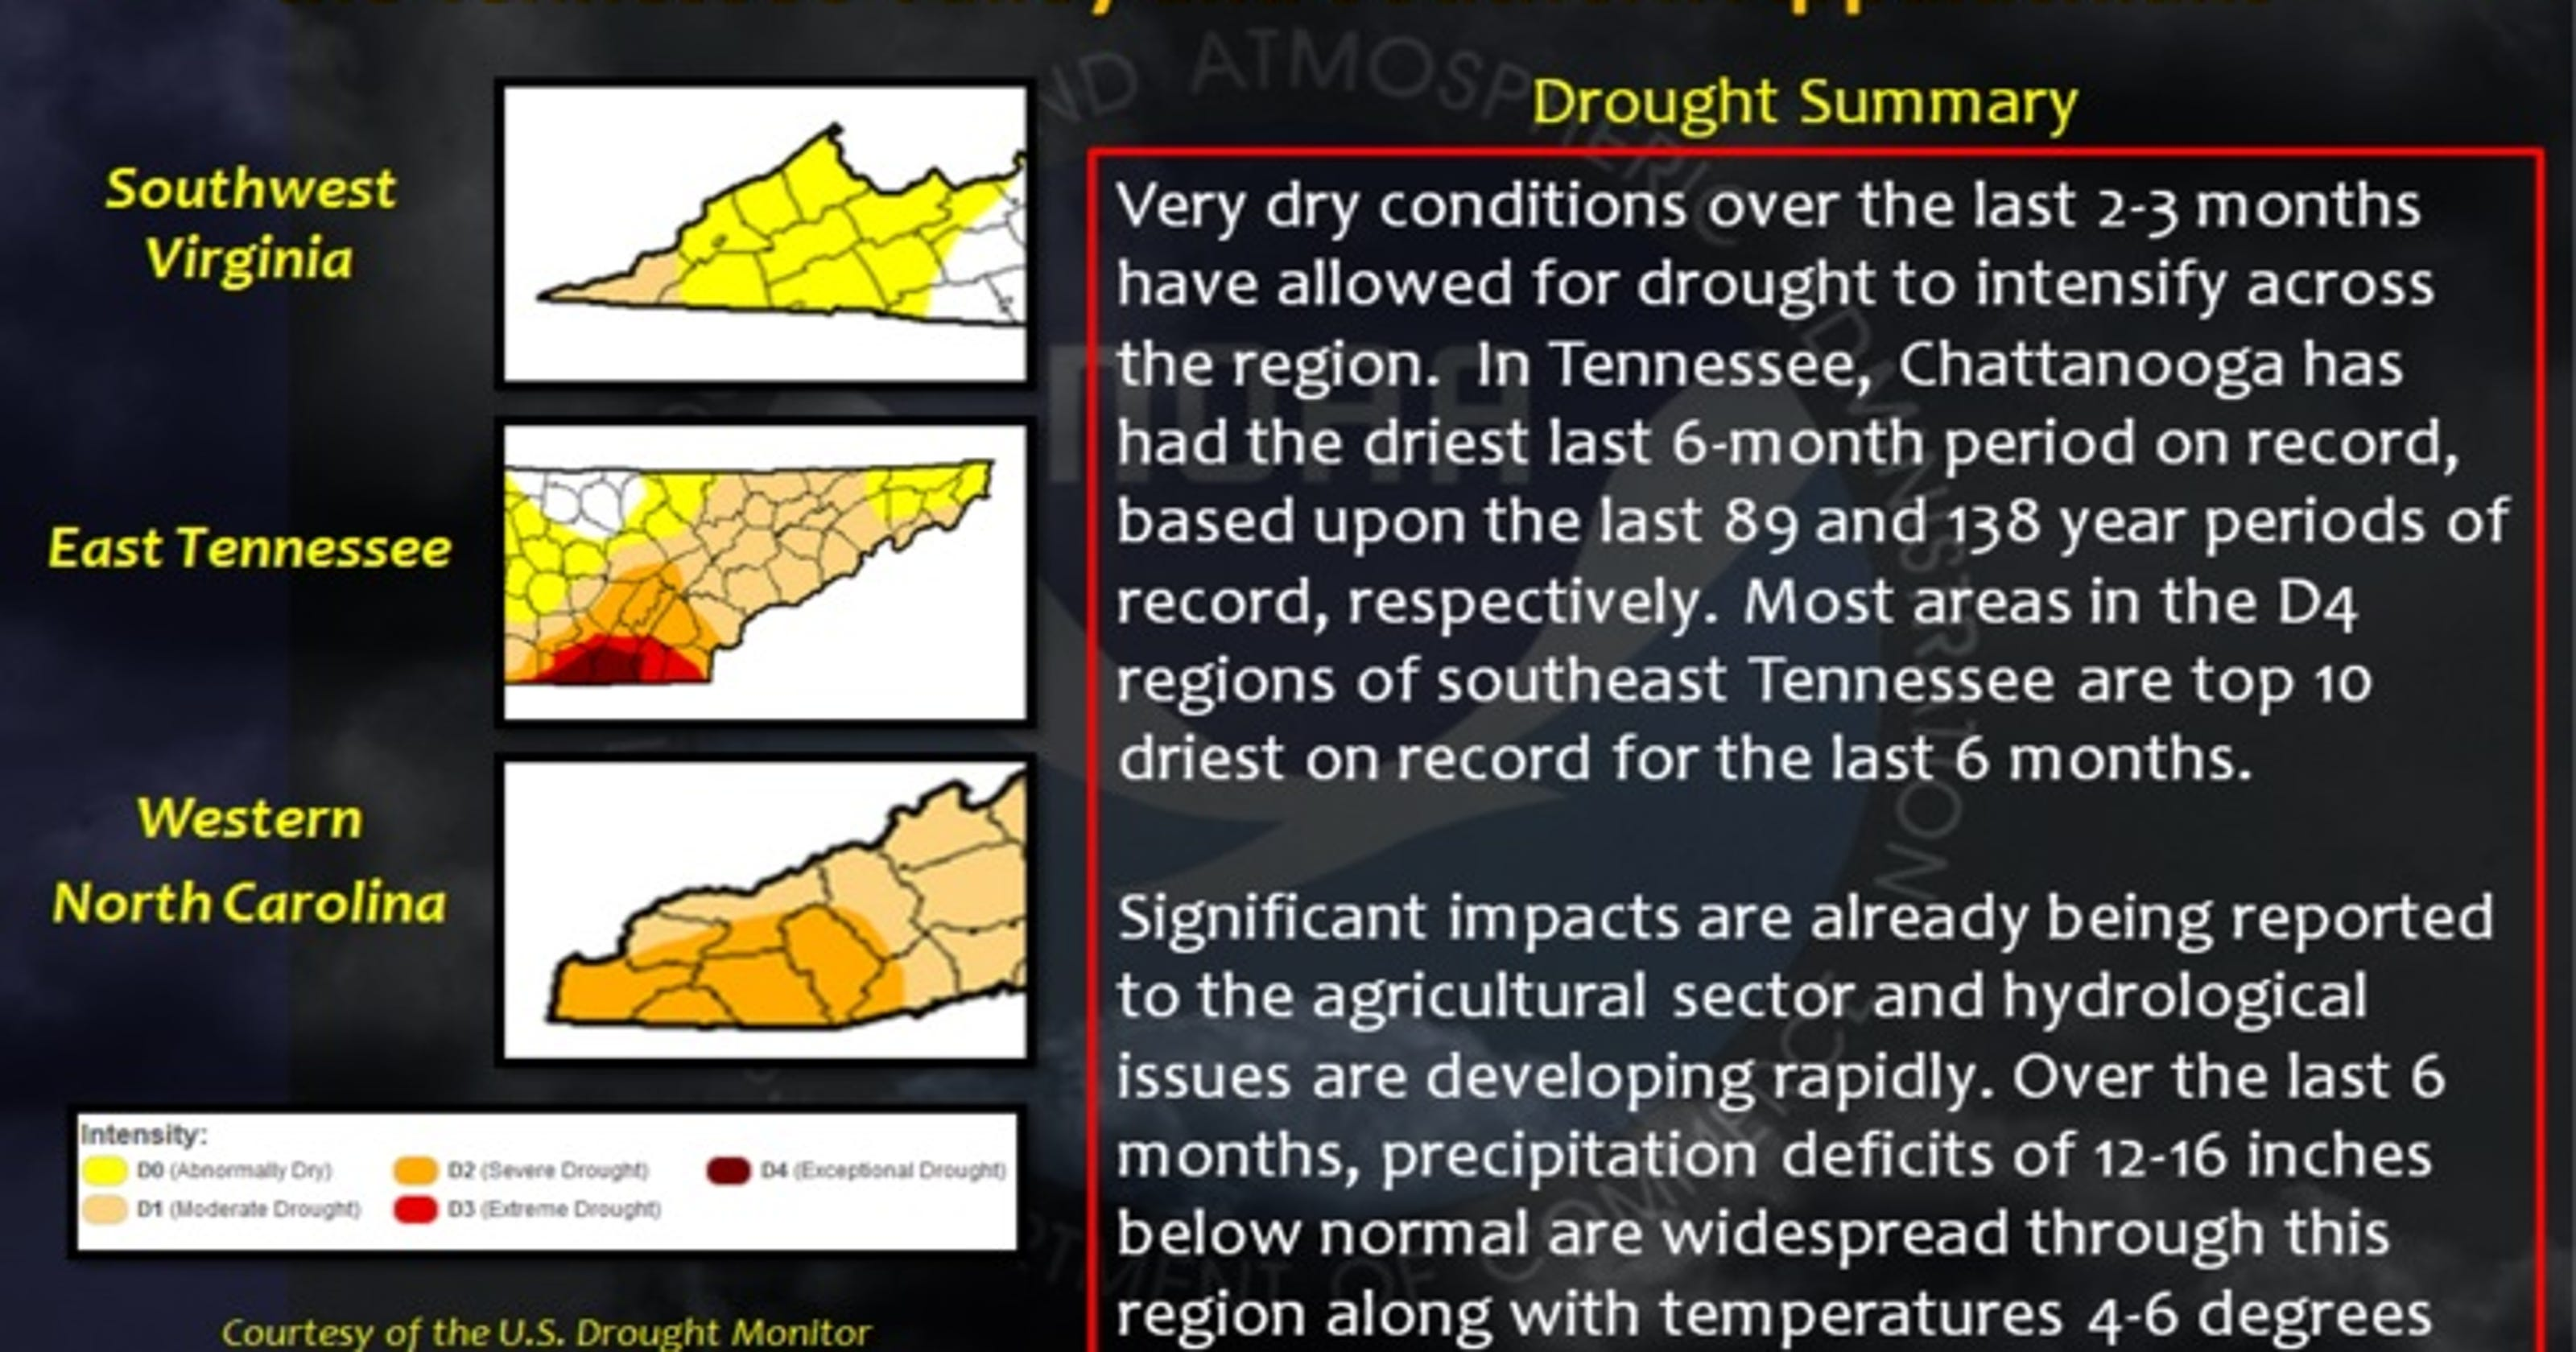 Drought continues in East Tennessee